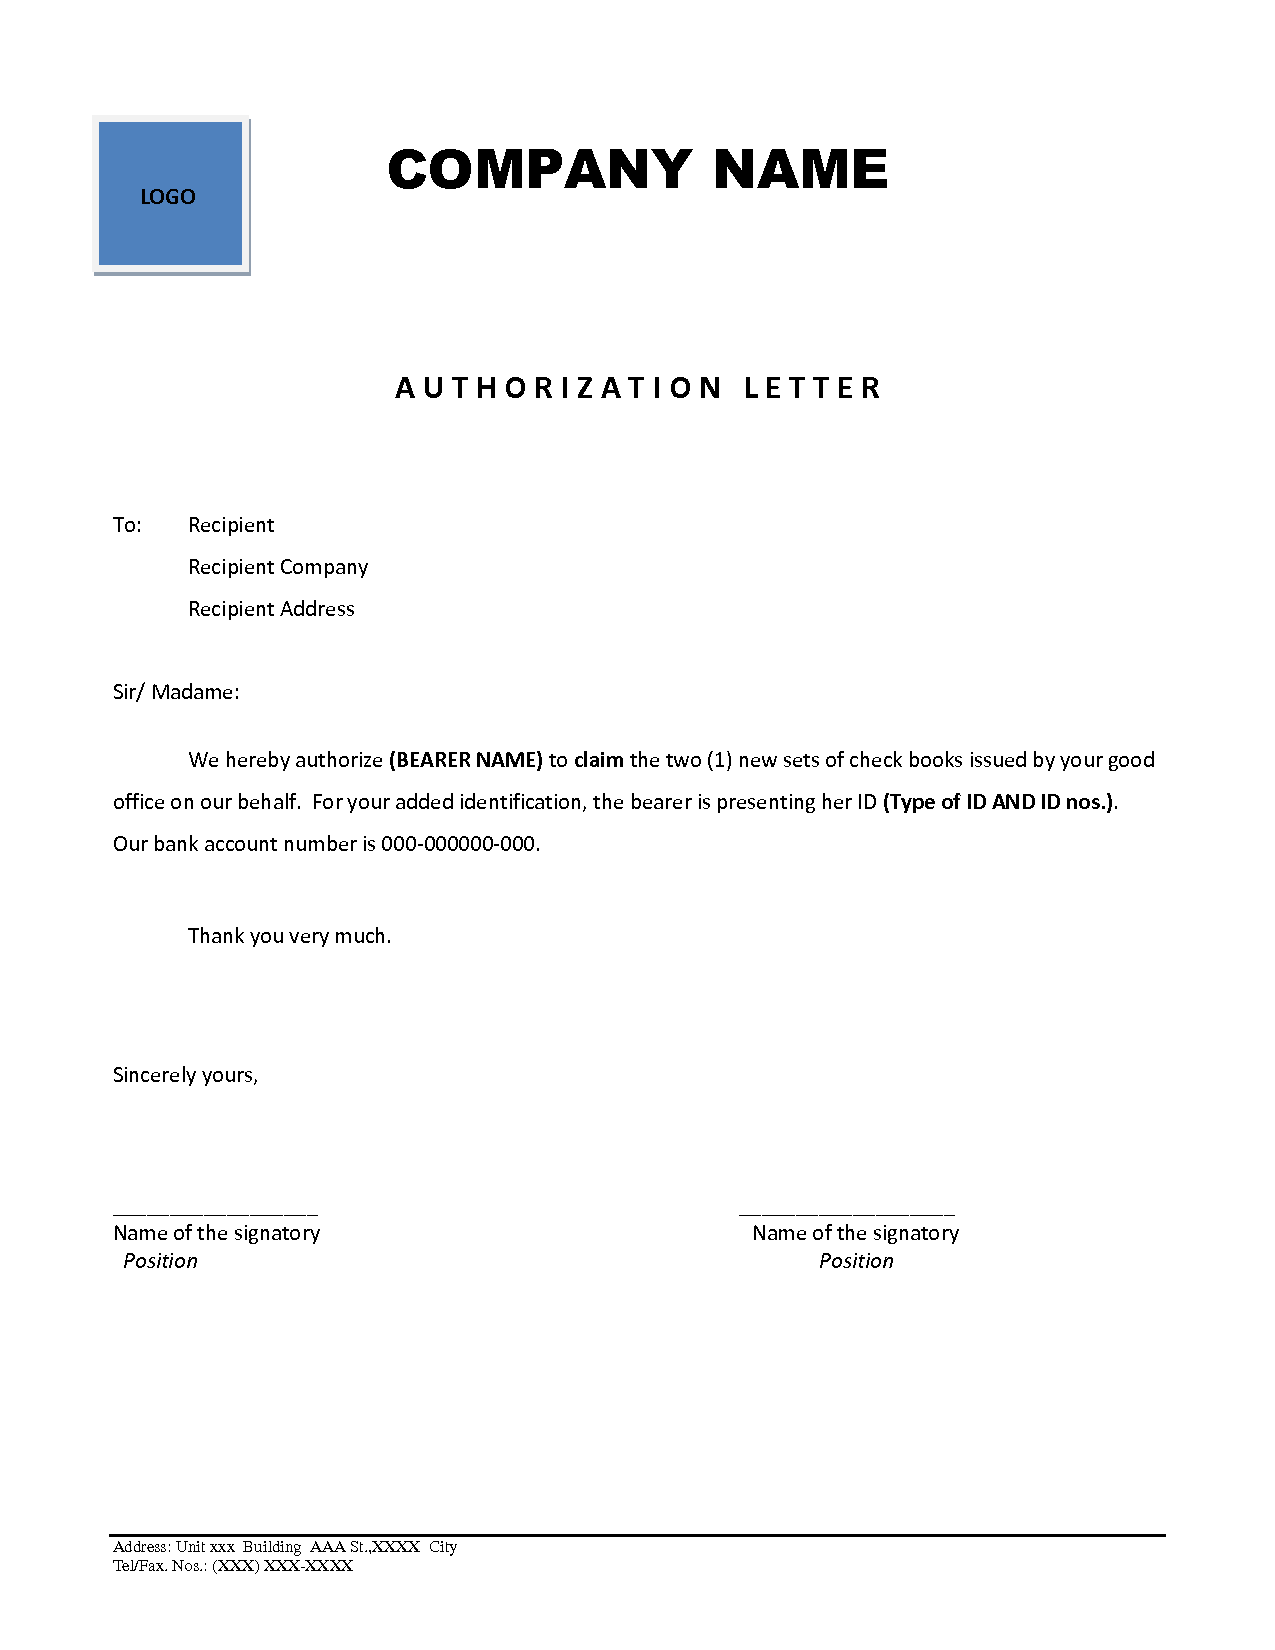 Letter For Documents Authorization And Making Mark Introduction